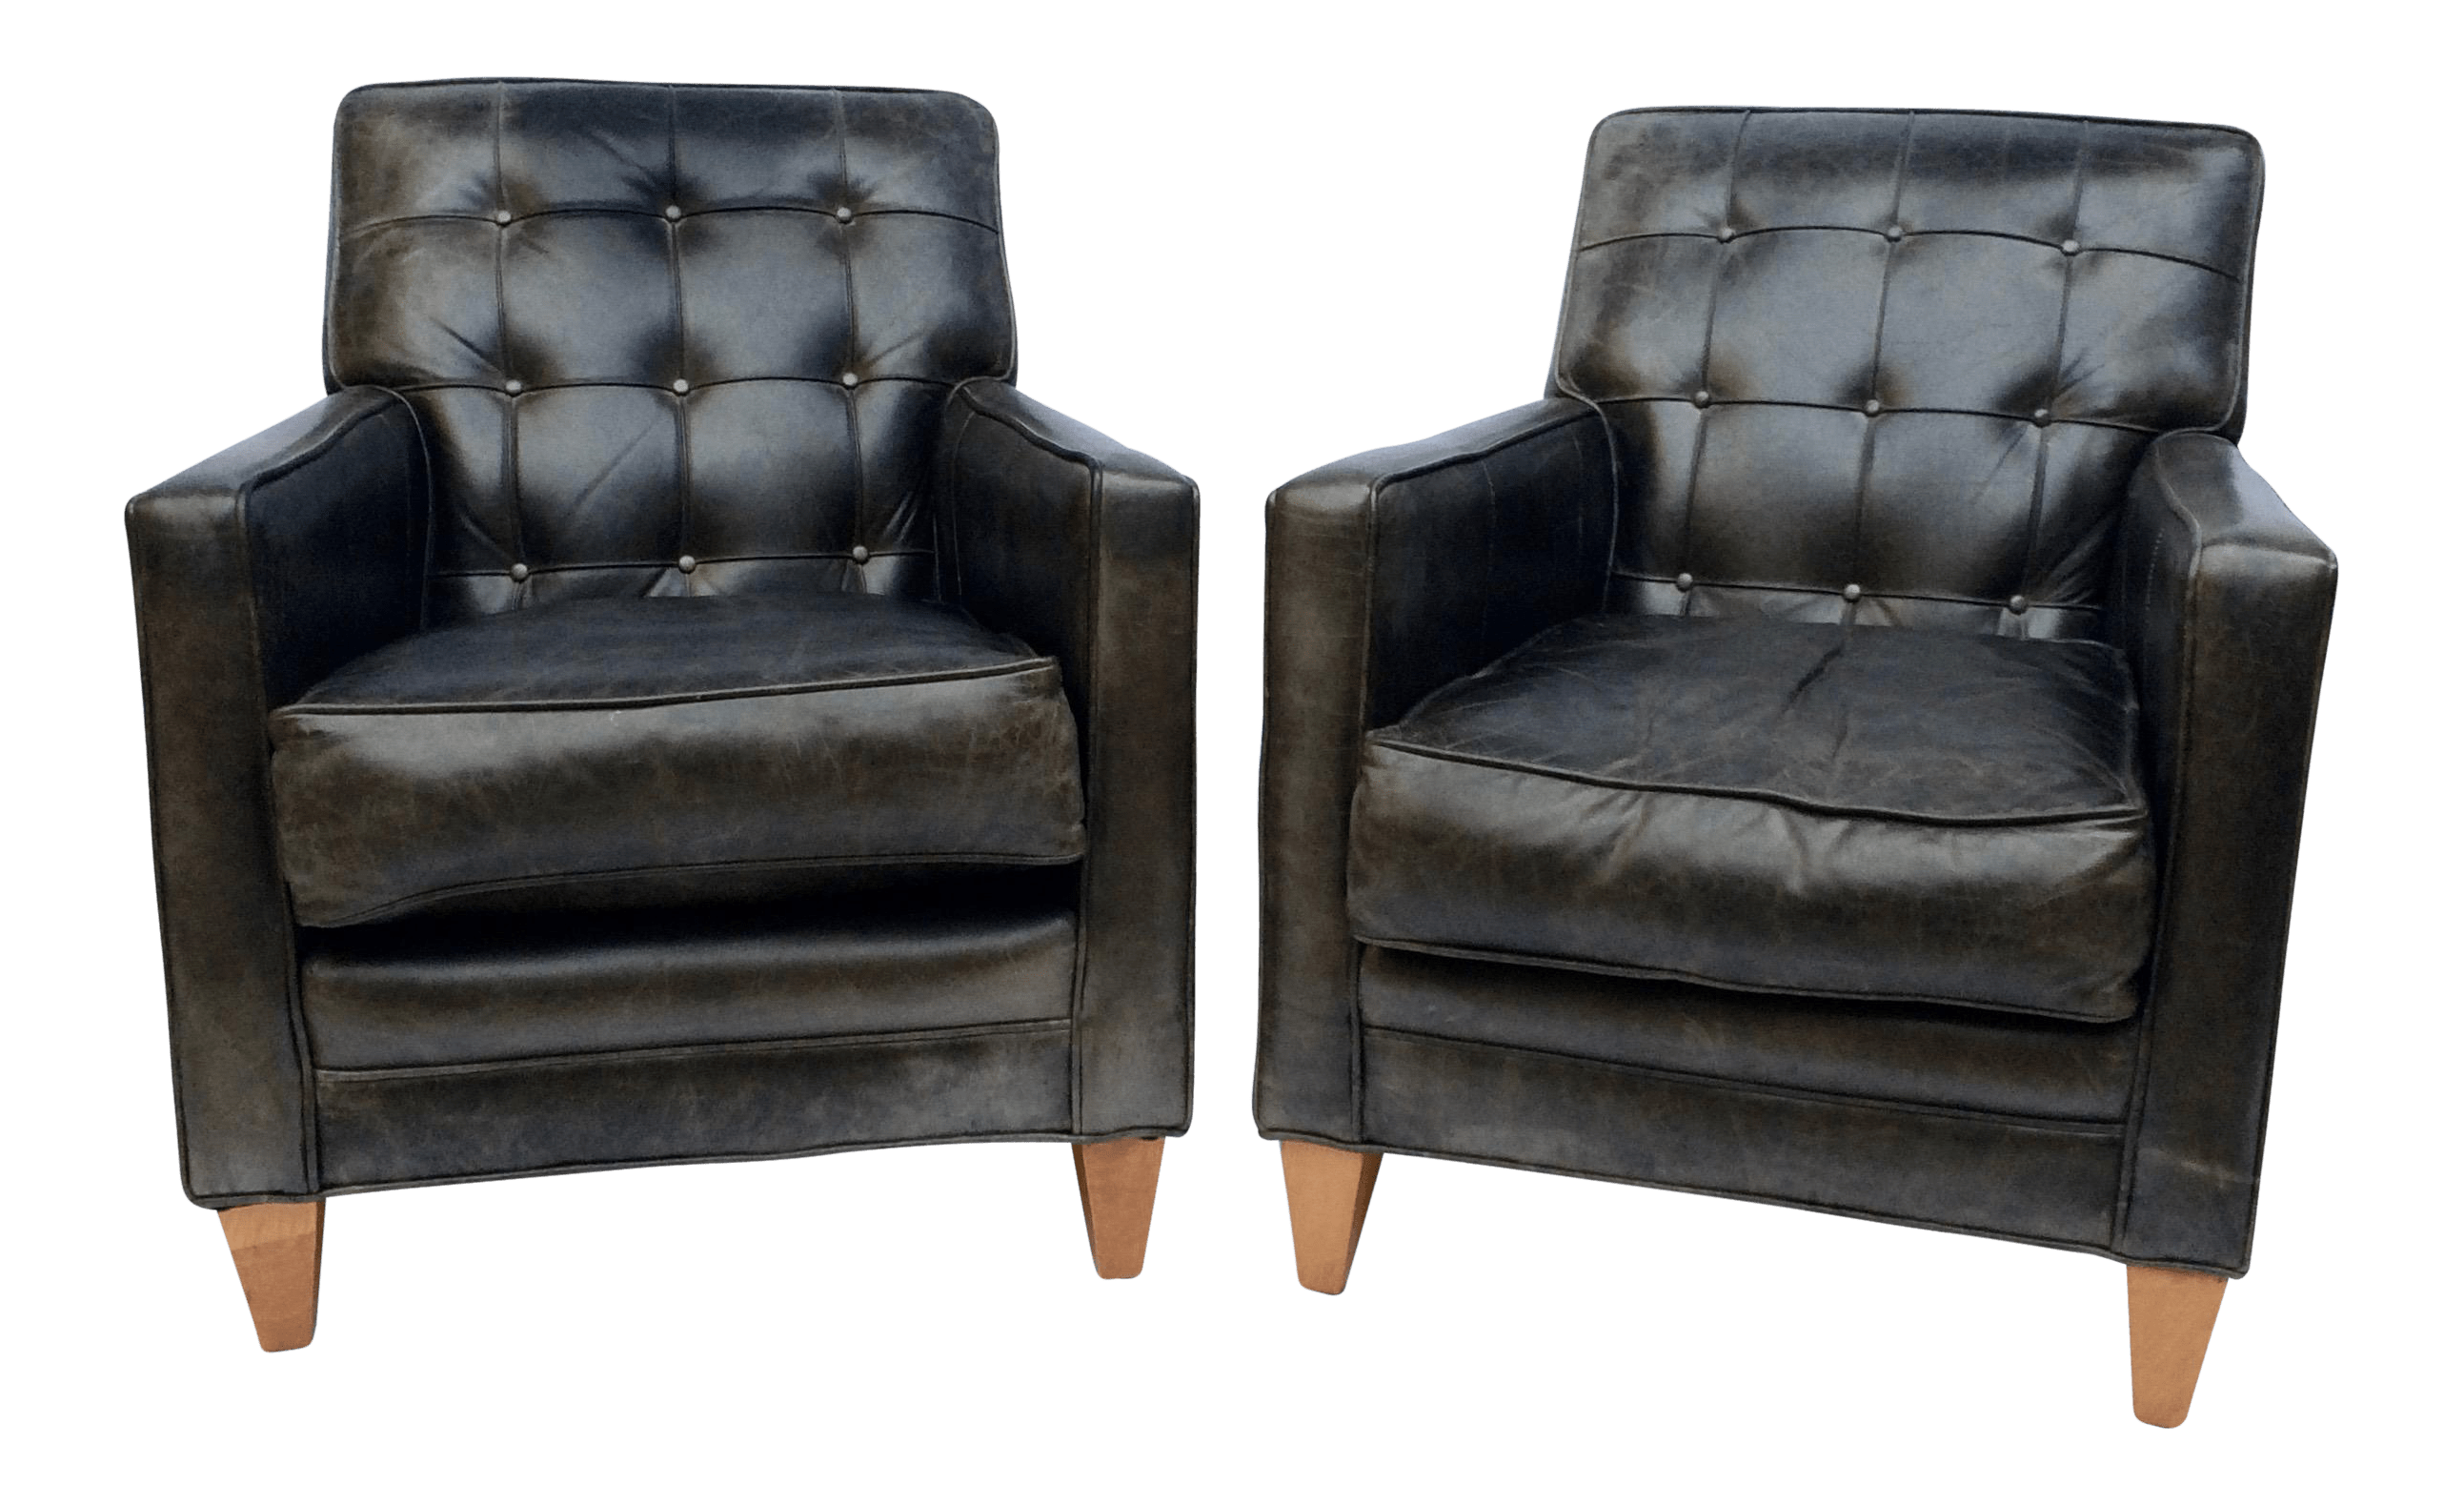 Black Leather Lounge Chair Vintage Tufted Back Black Leather Lounge Chairs A Pair